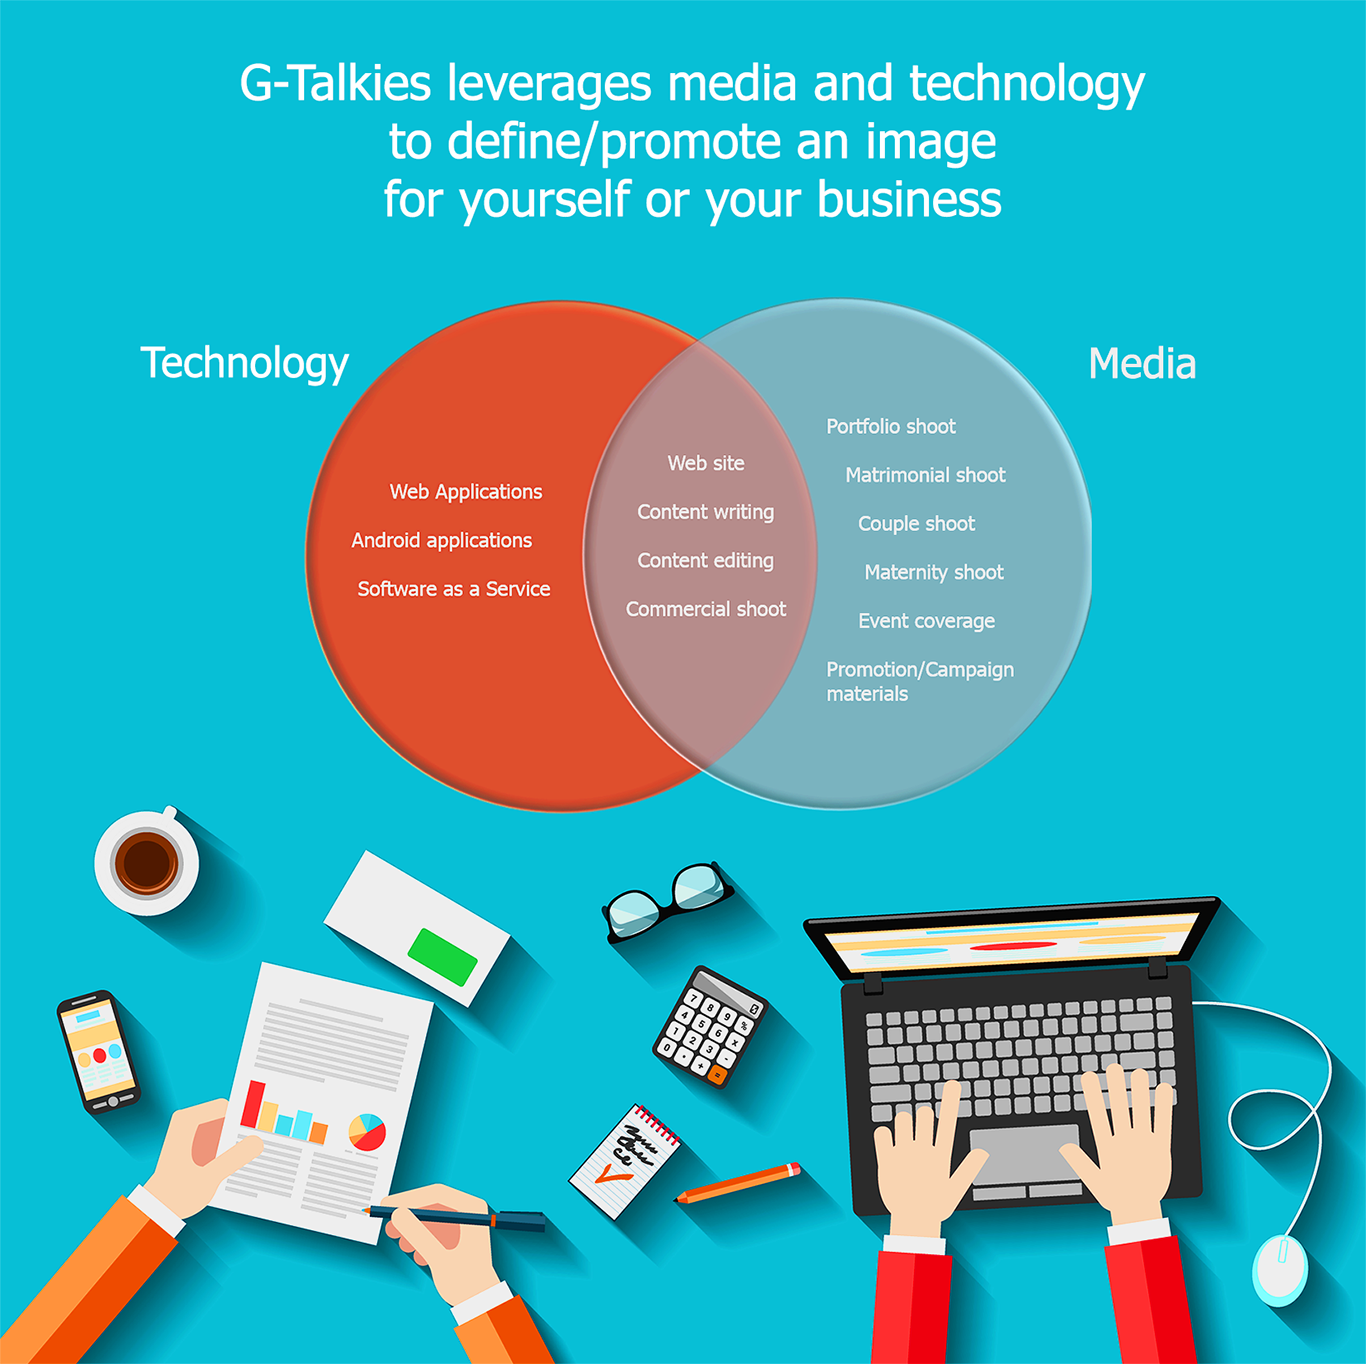 G-Talkies leverages Media & Technology to define/promote an image for yourself or your business